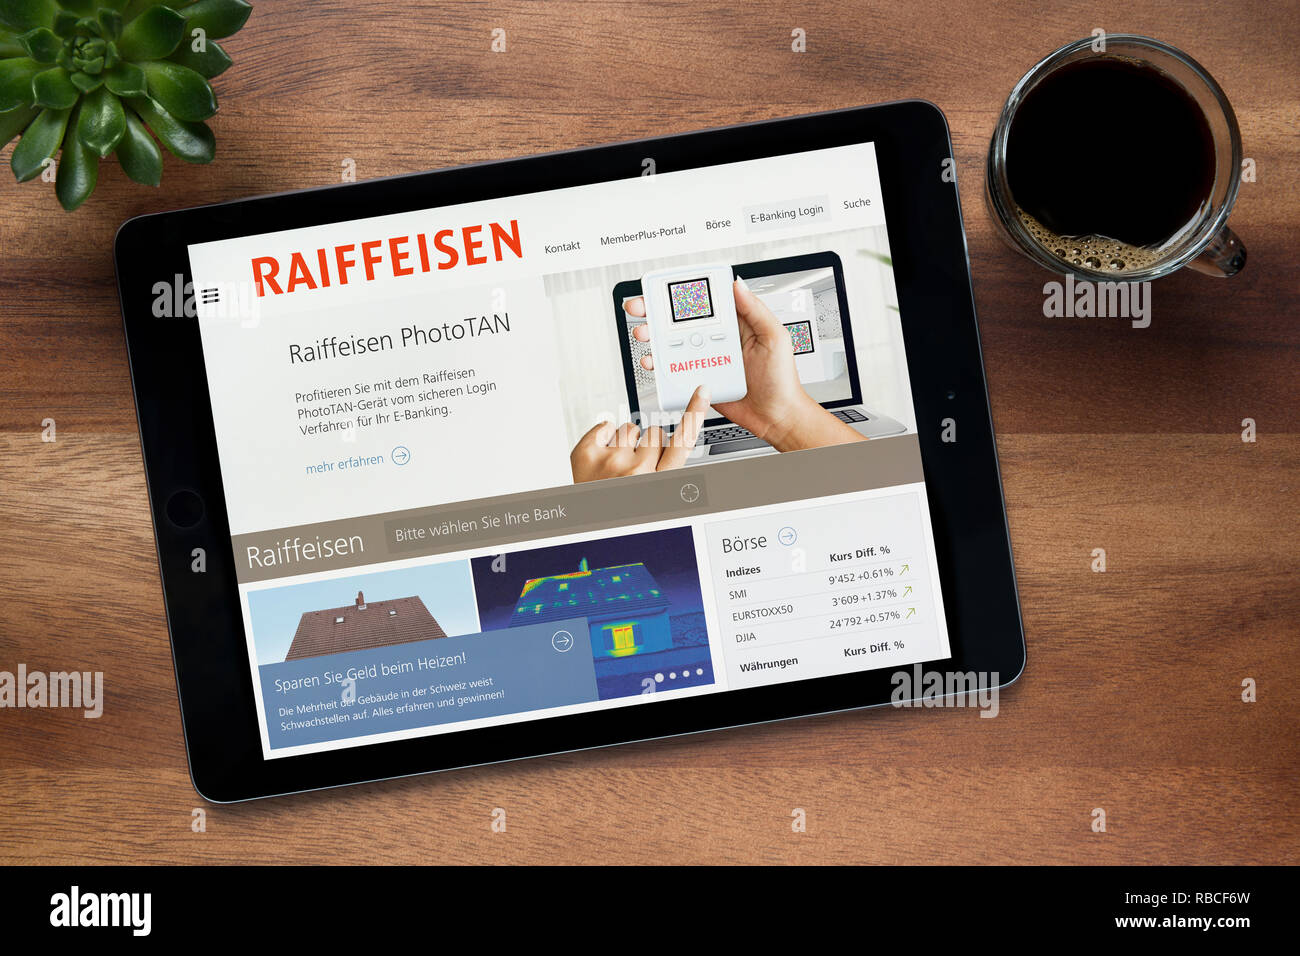 The website of the Swiss bank, Raiffeisen, is seen on an iPad tablet, resting on a wooden (Editorial use only). - Stock Image